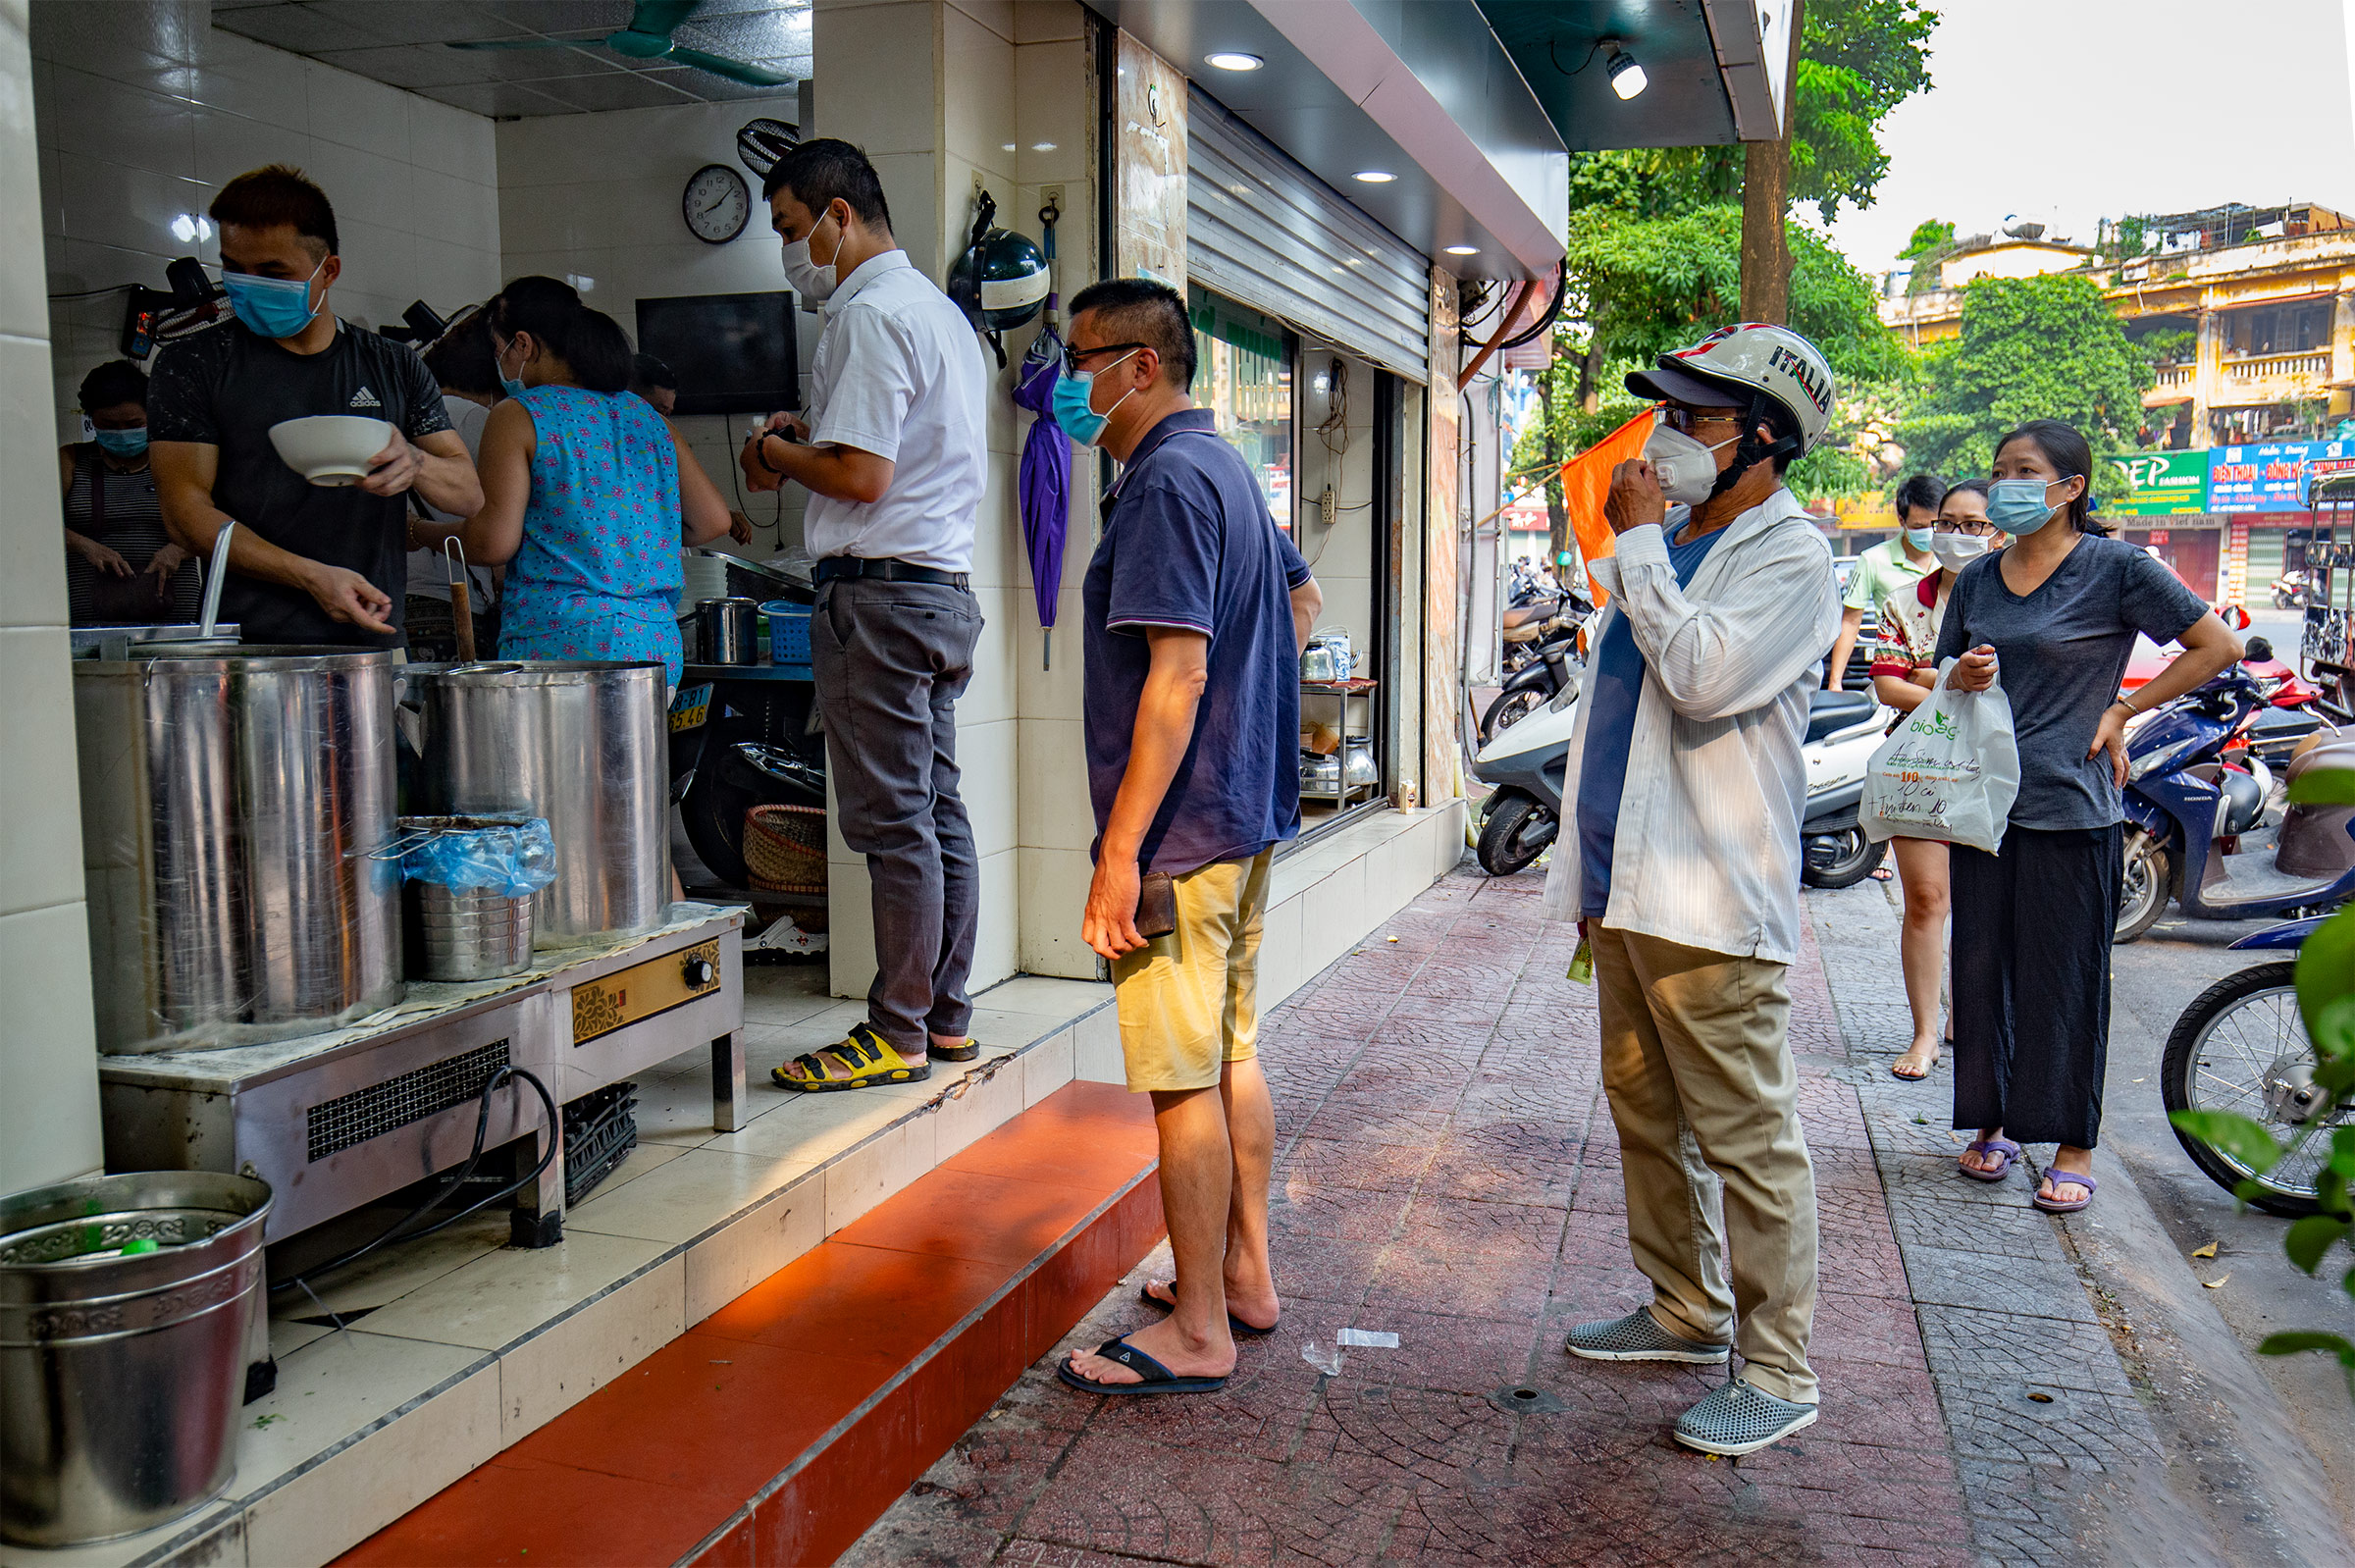 Many people were spotted lining up outside a pho shop on Nguyen Son Street at 8 a.m.